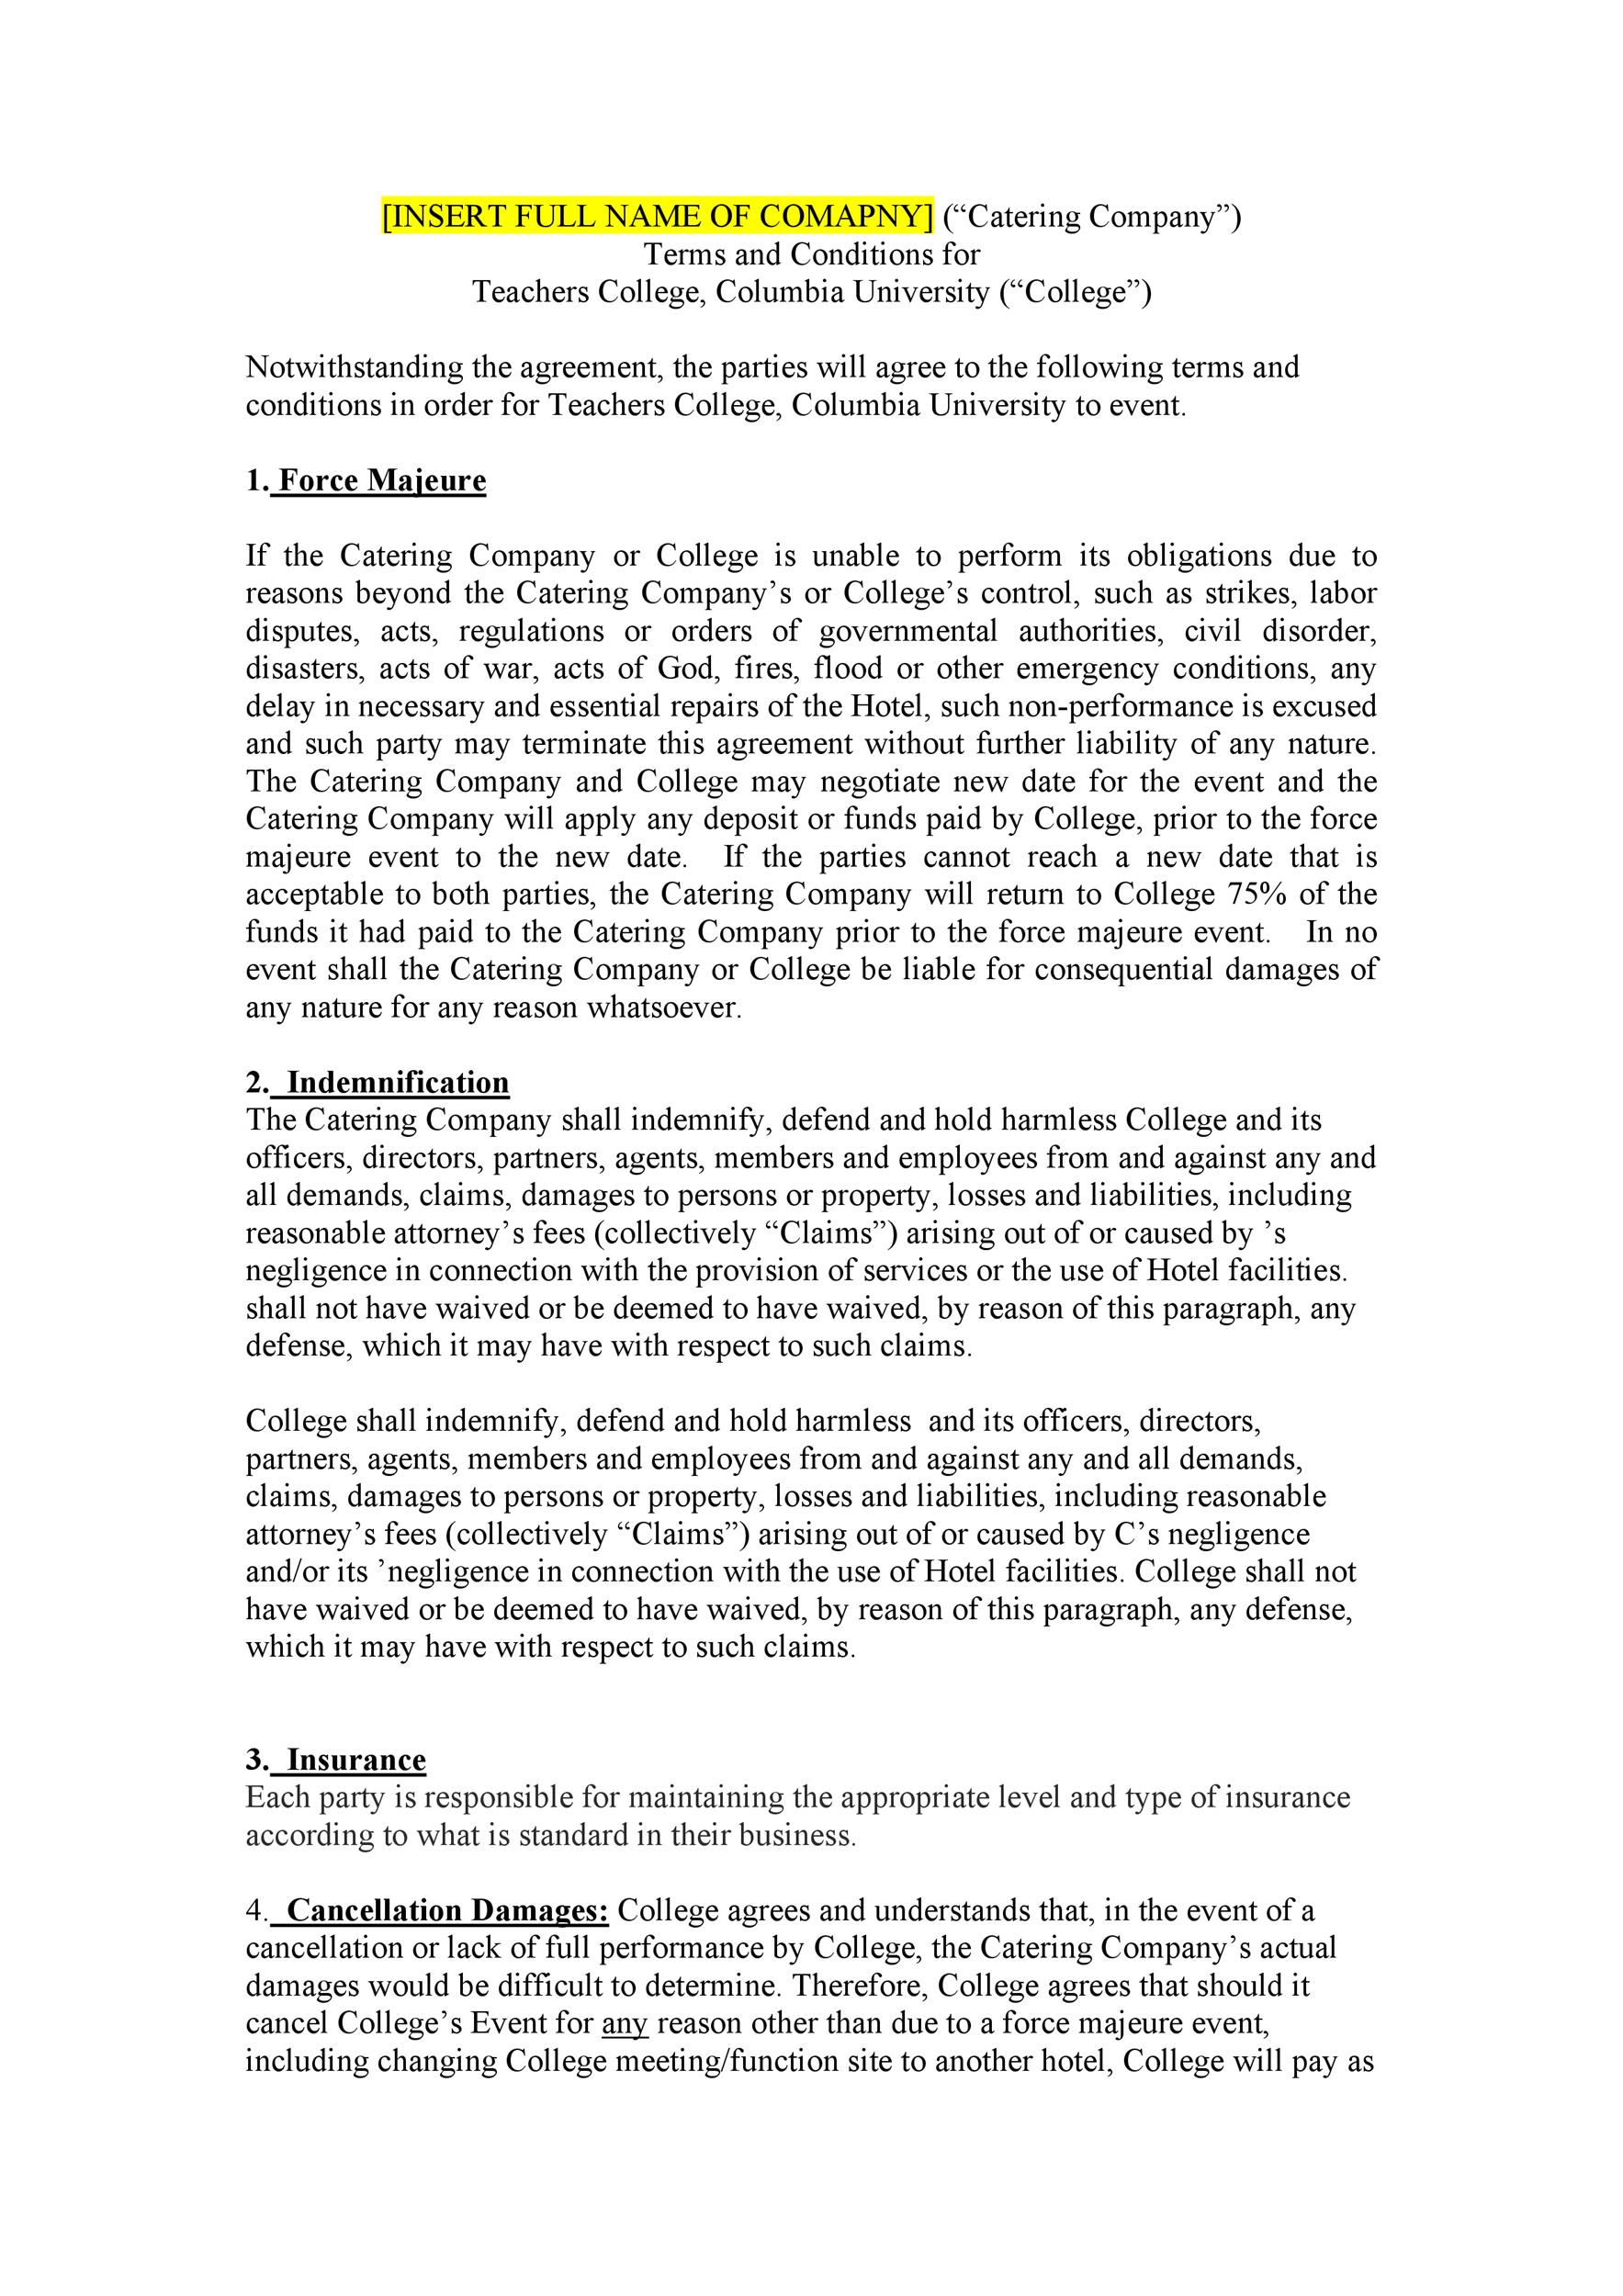 Free terms and conditions template 37